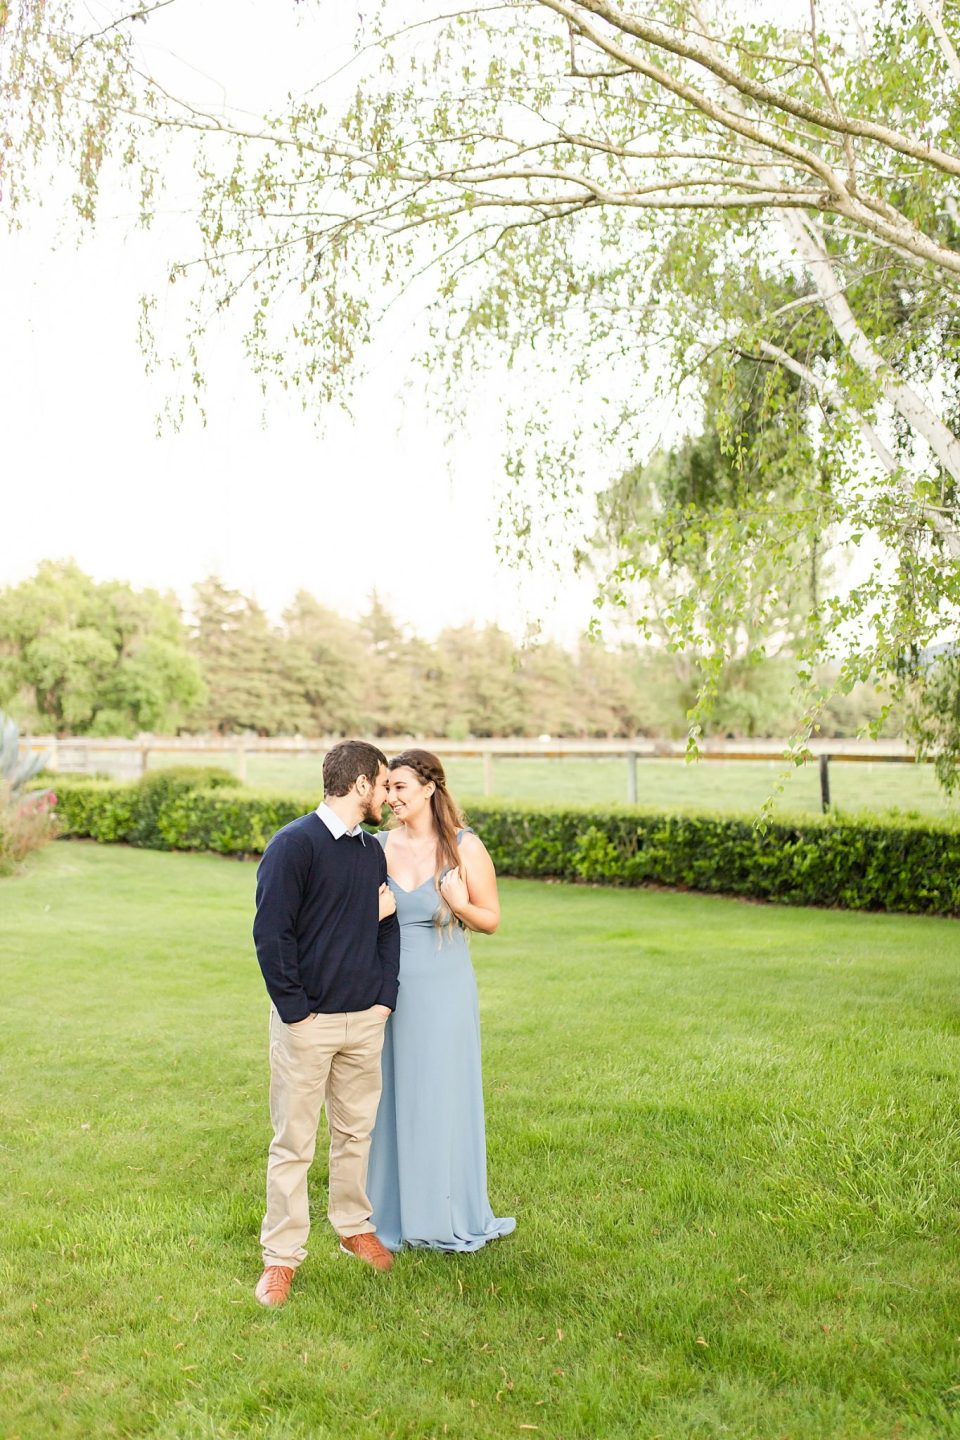 The couple smiling at each other as Sofia holds onto her hair underneath a large tree with enormous branches during their Whispering Rose Ranch Engagement Session.